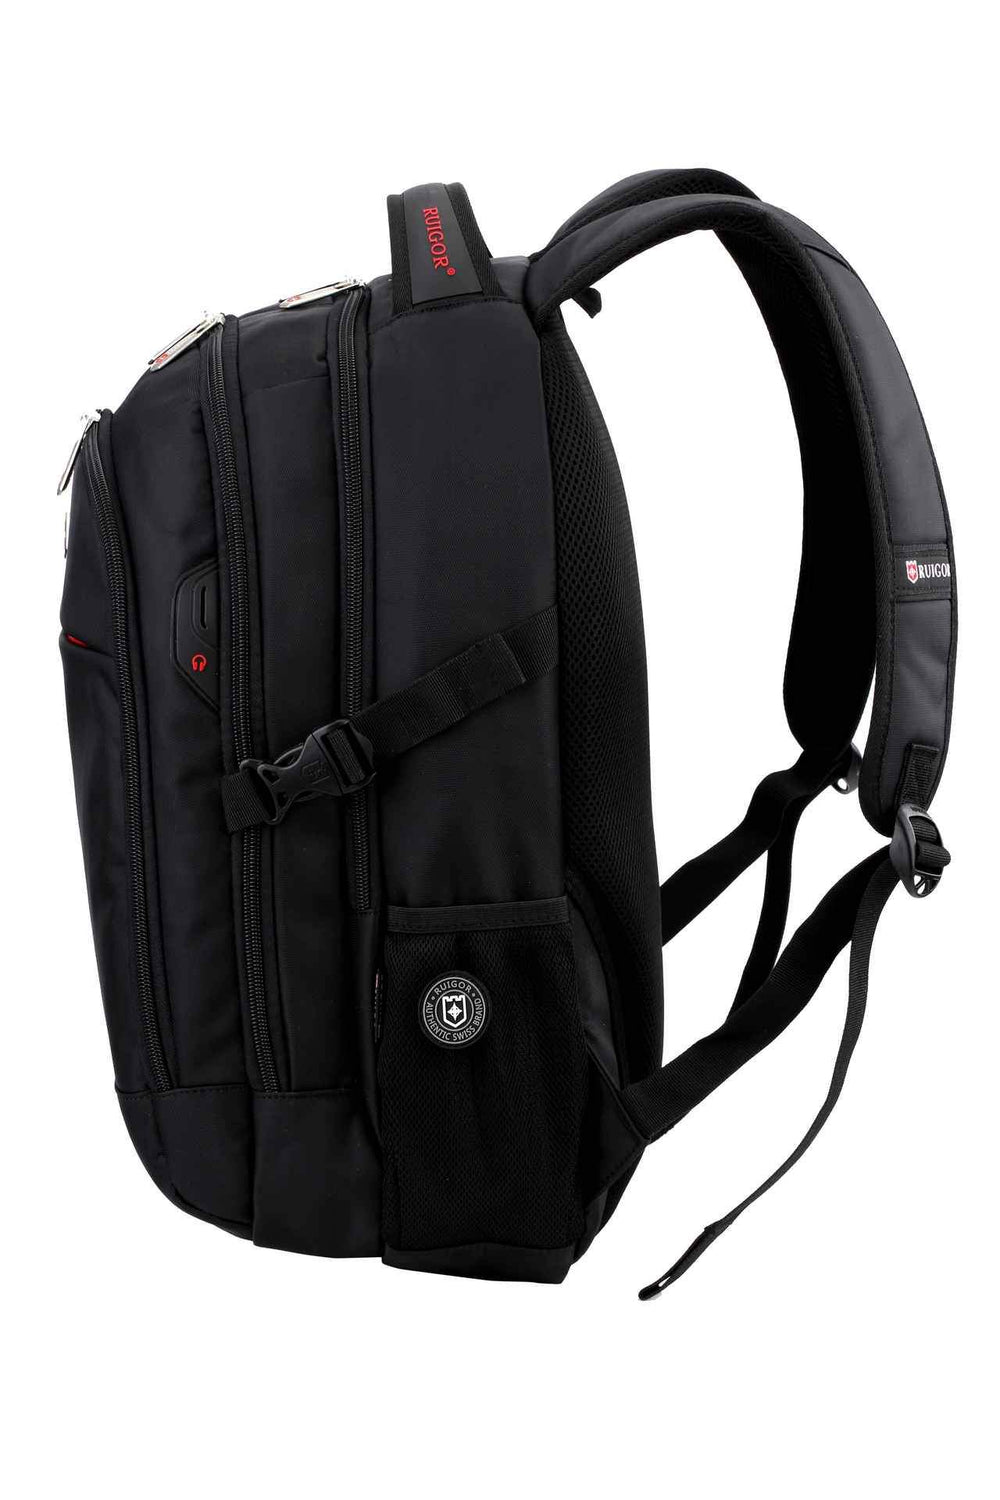 RUIGOR ICON 92 Laptop Backpack Black